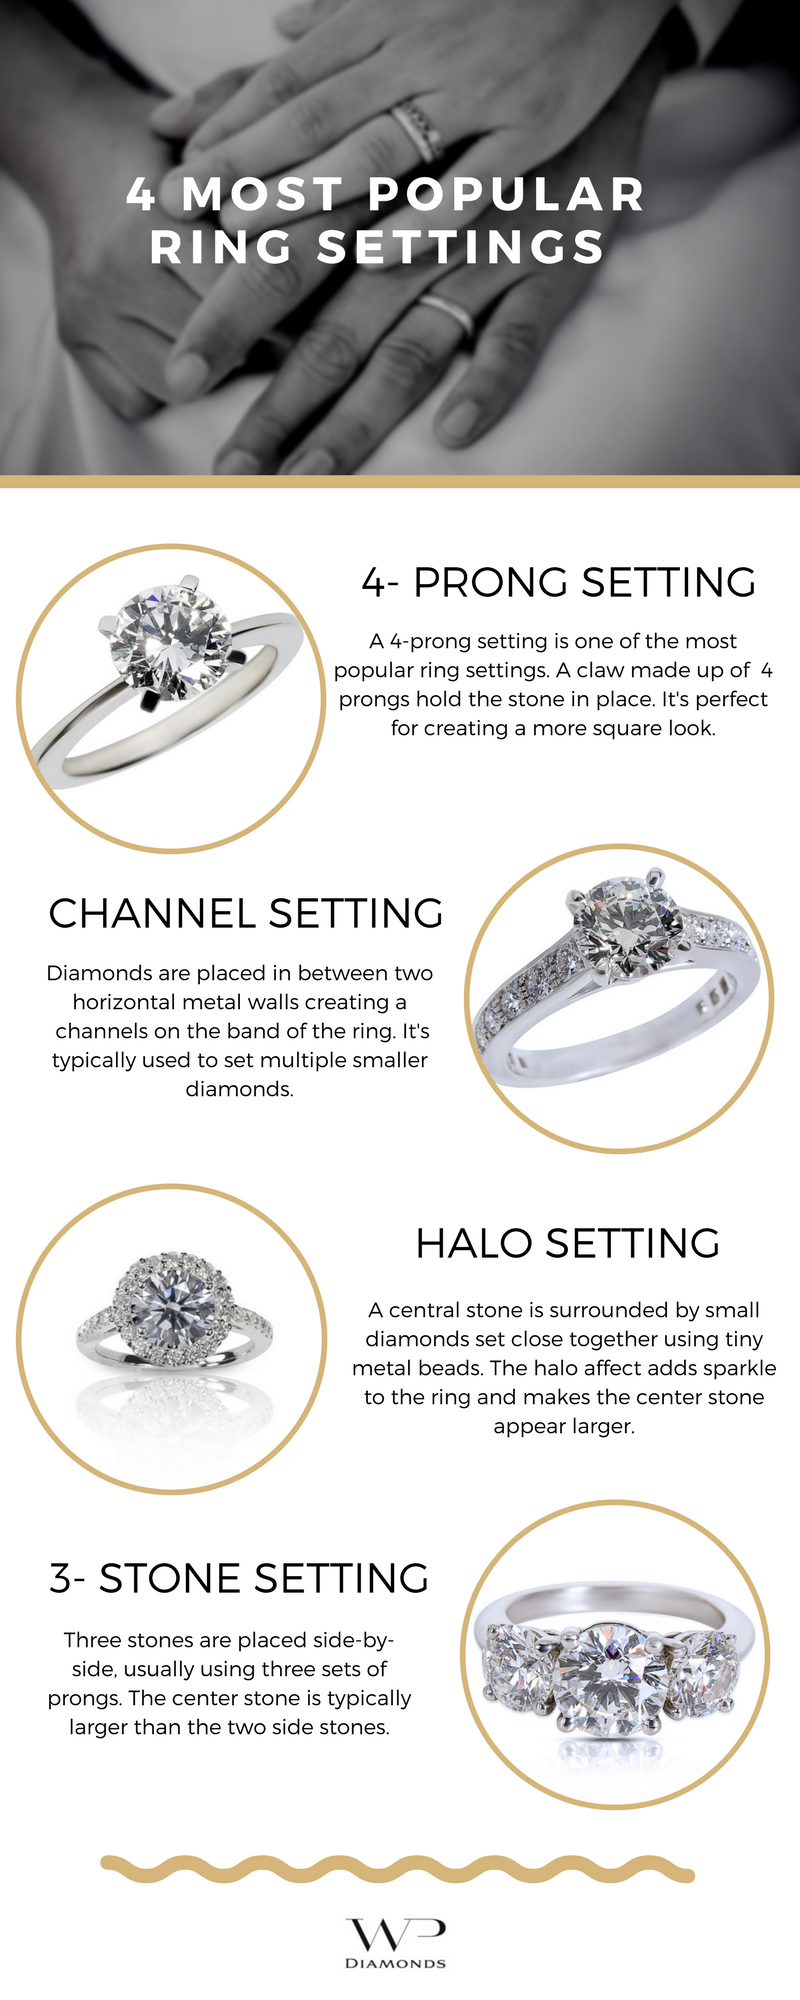 Most Popular Ring Settings (1)